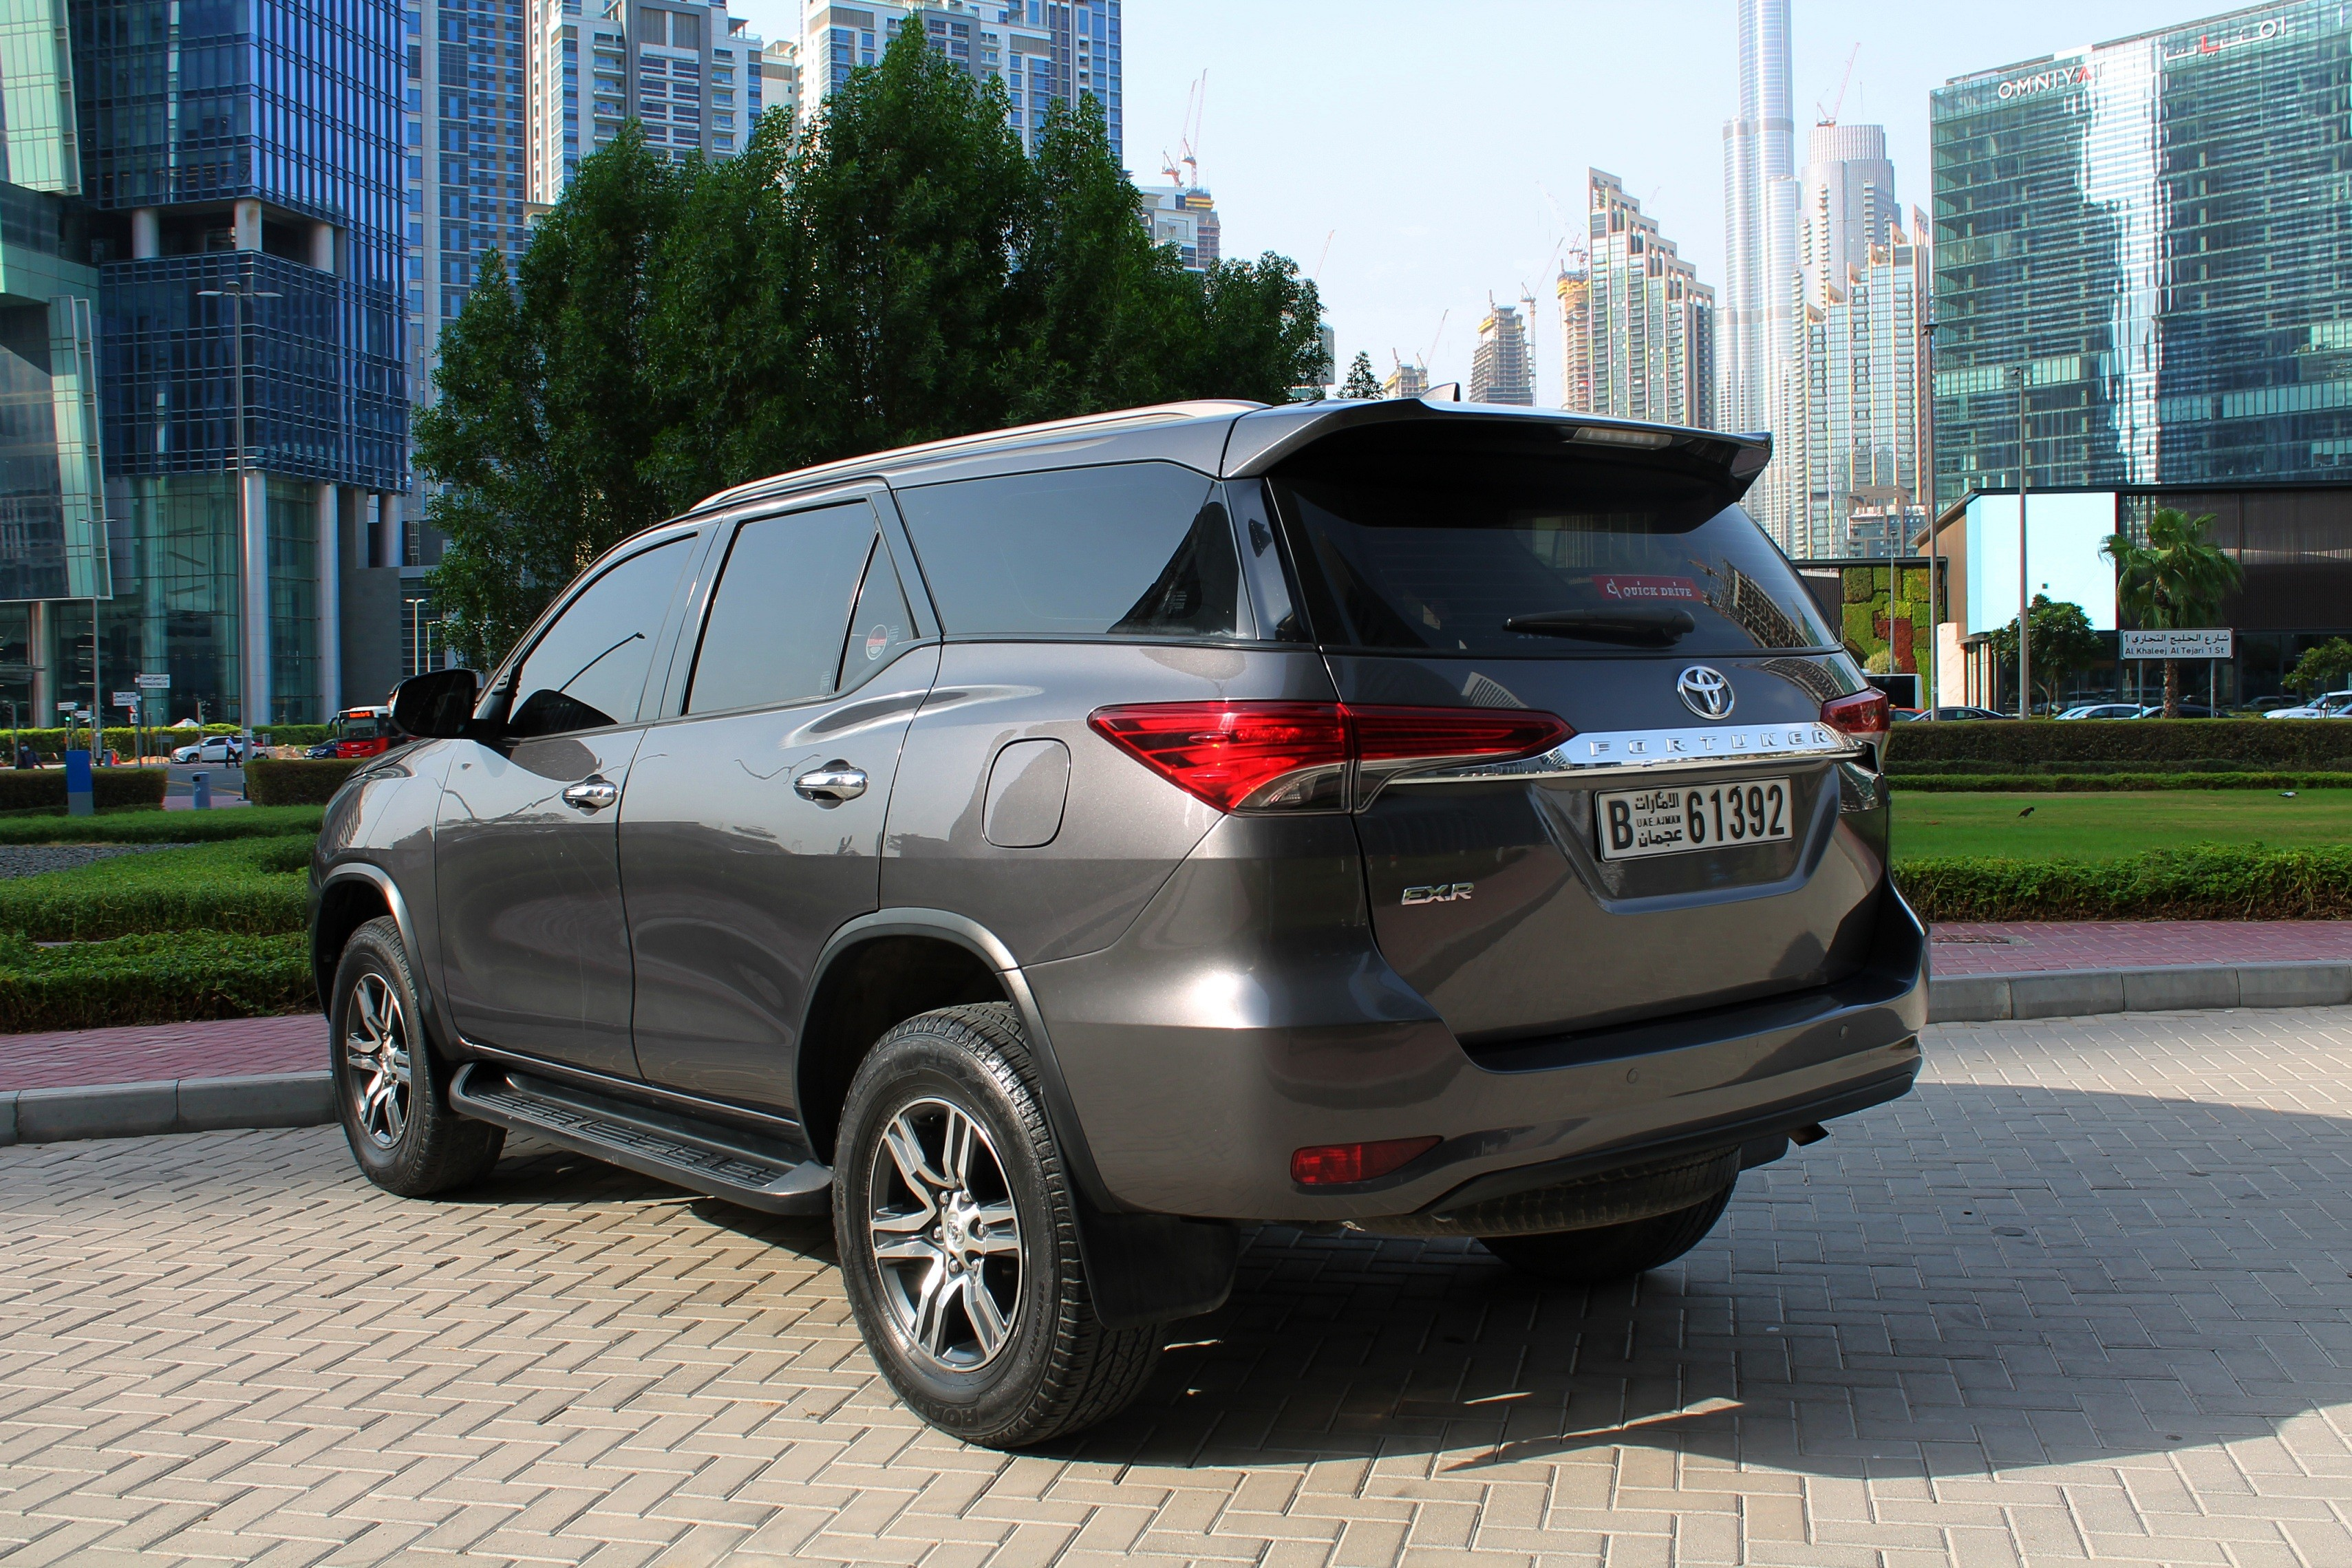 https://quickdrive.ae/uploads/2020/07/22/3 fortuner.jpg